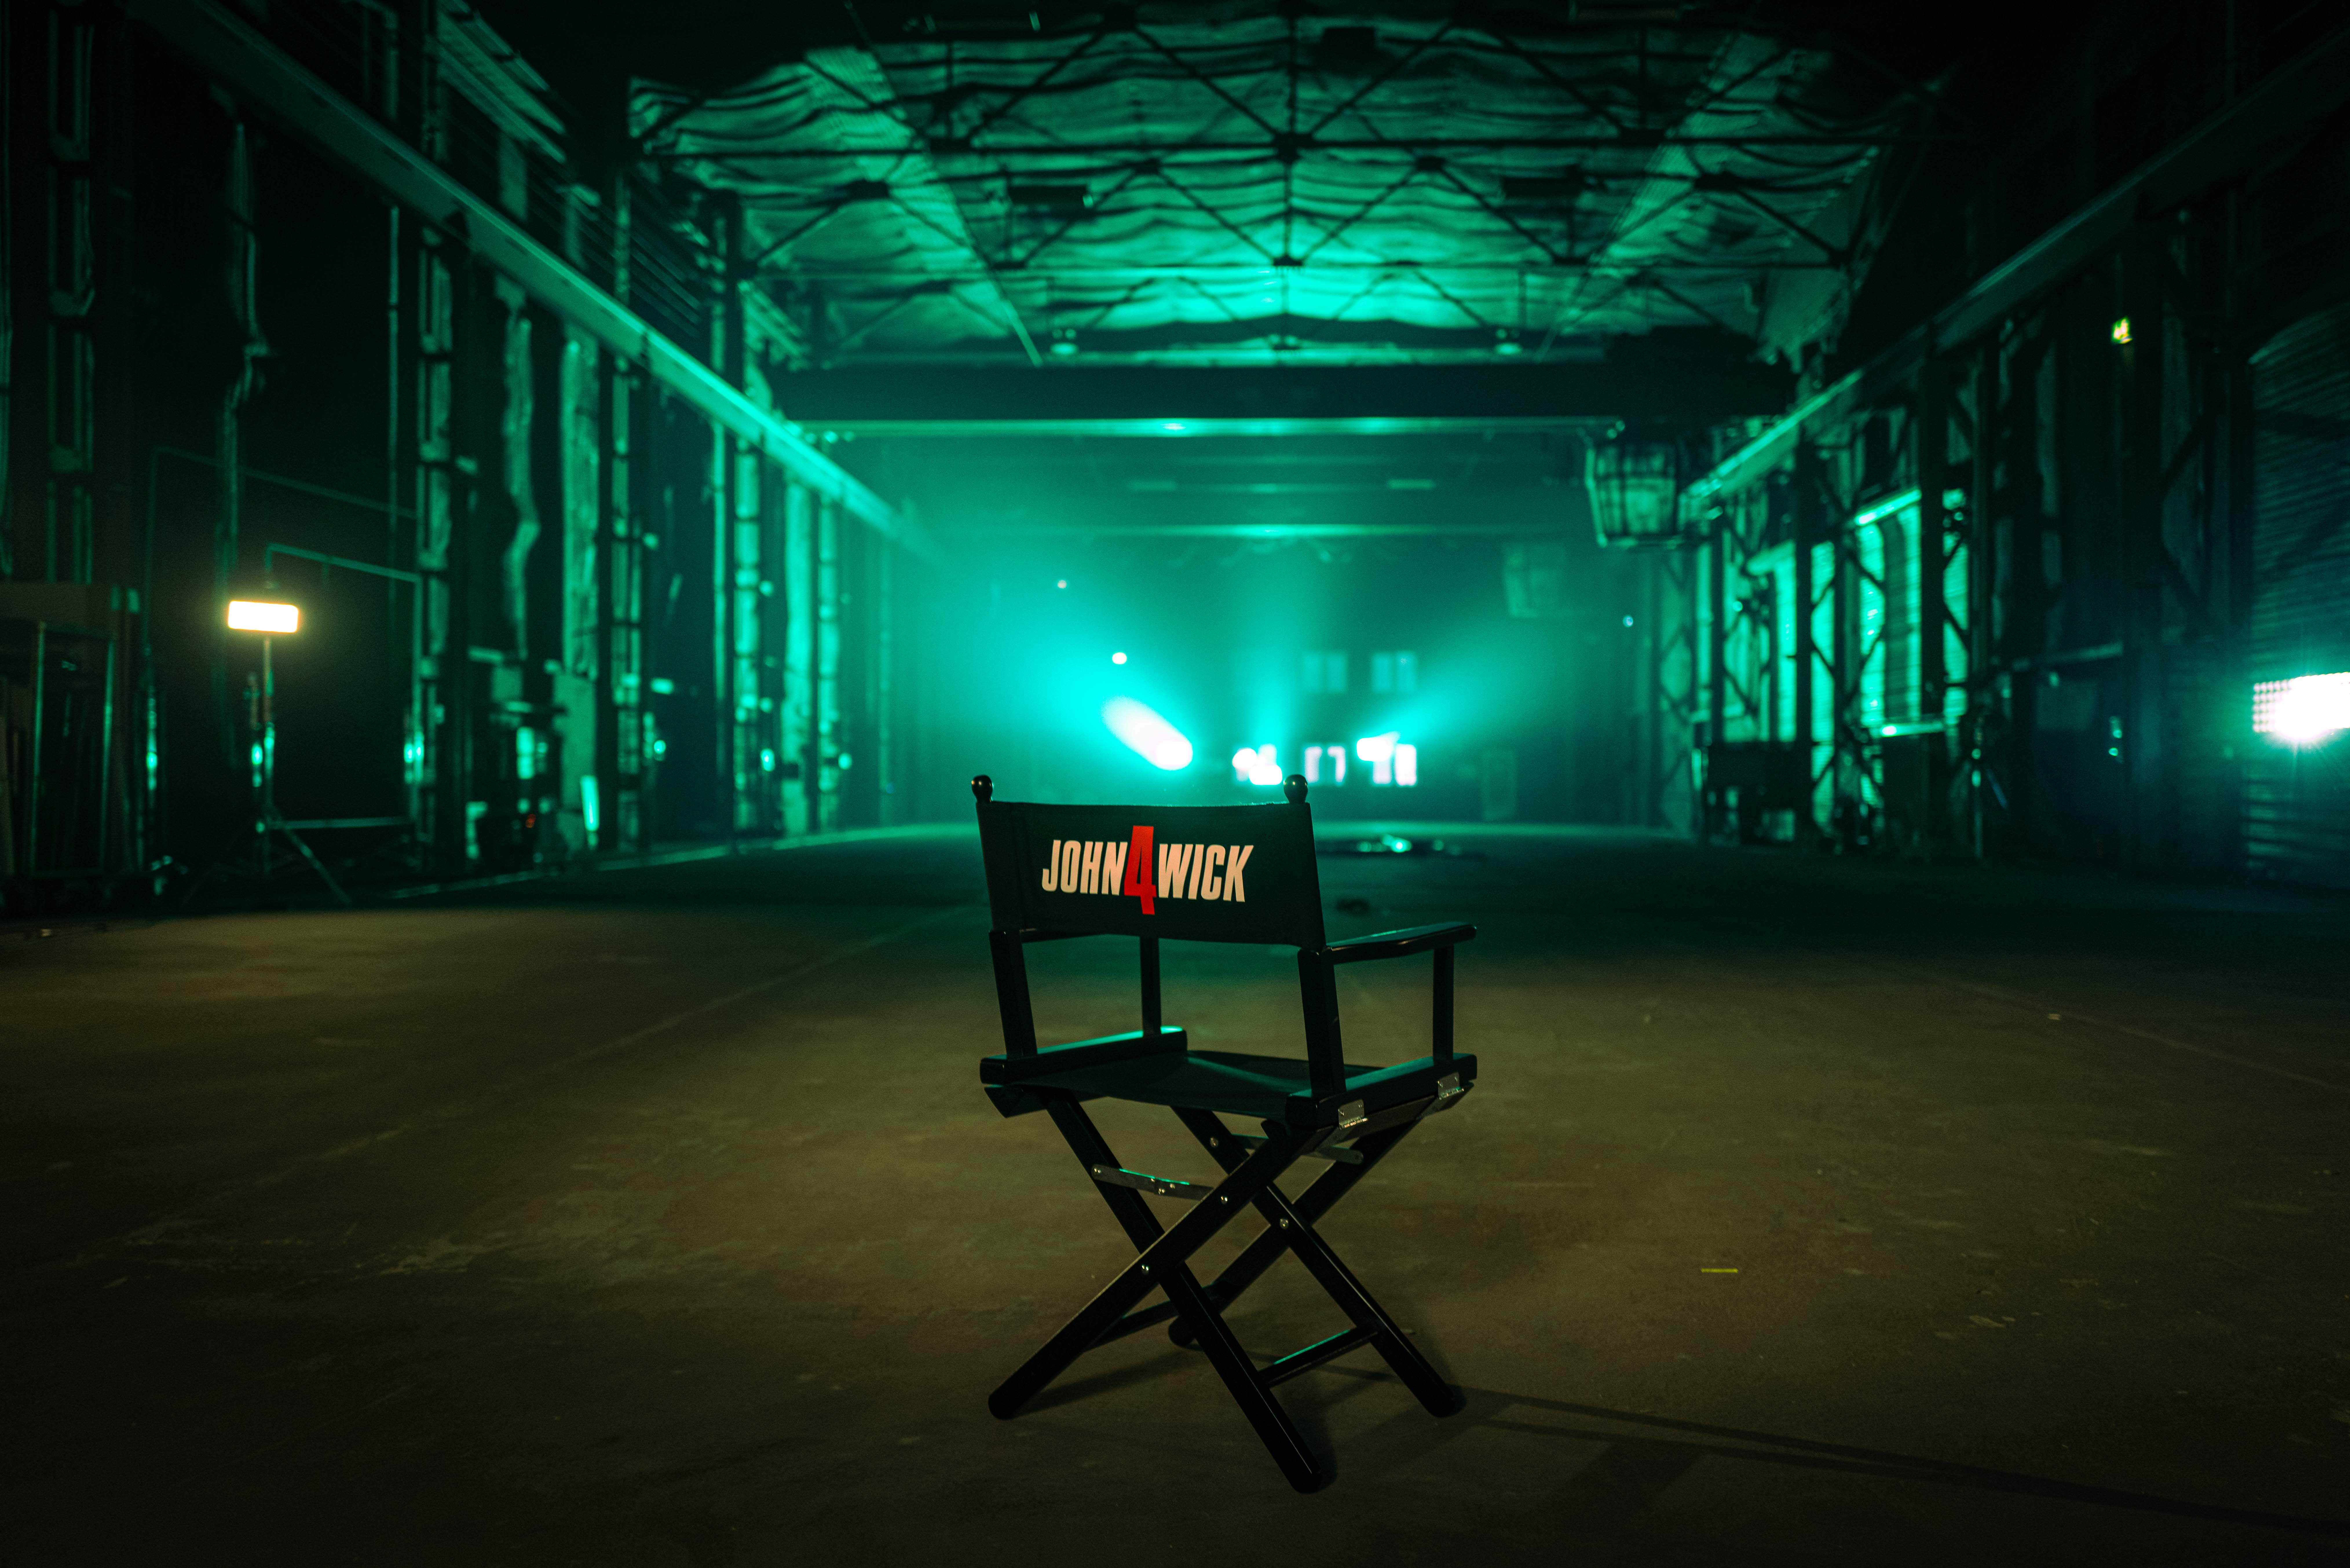 'John Wick 4' Has Officially Started Filming